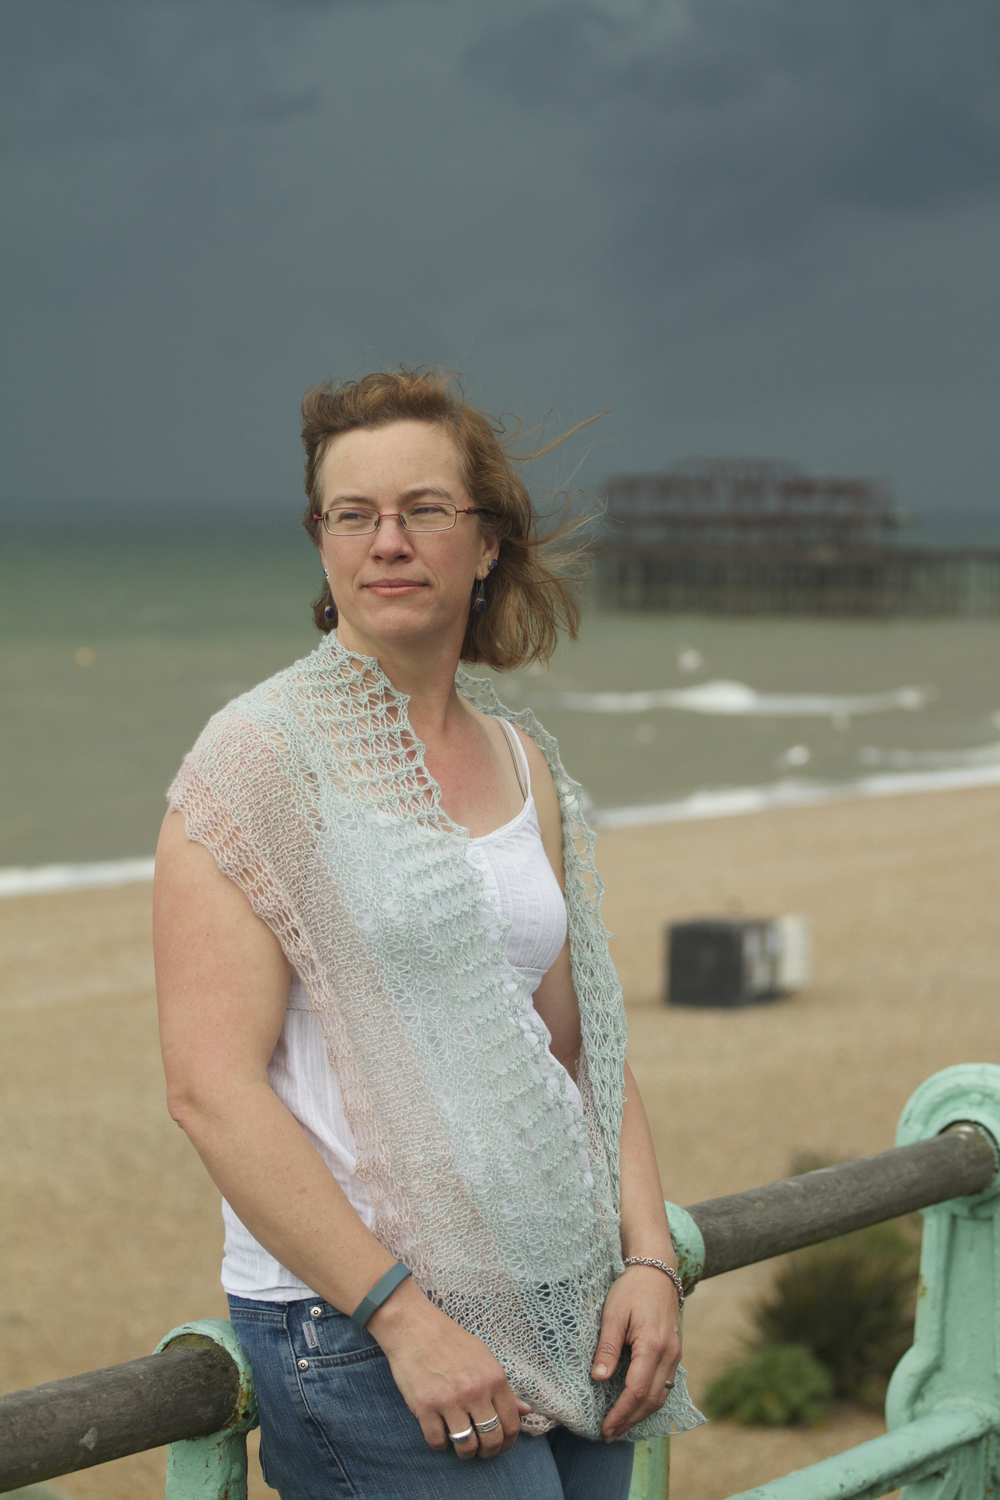 The longer version of the cowl was knit in two colours using a slipped stitch in the transition portion to work the two colours. We chose a stitch that mimics water rushing over the rocky beach in Brighton.